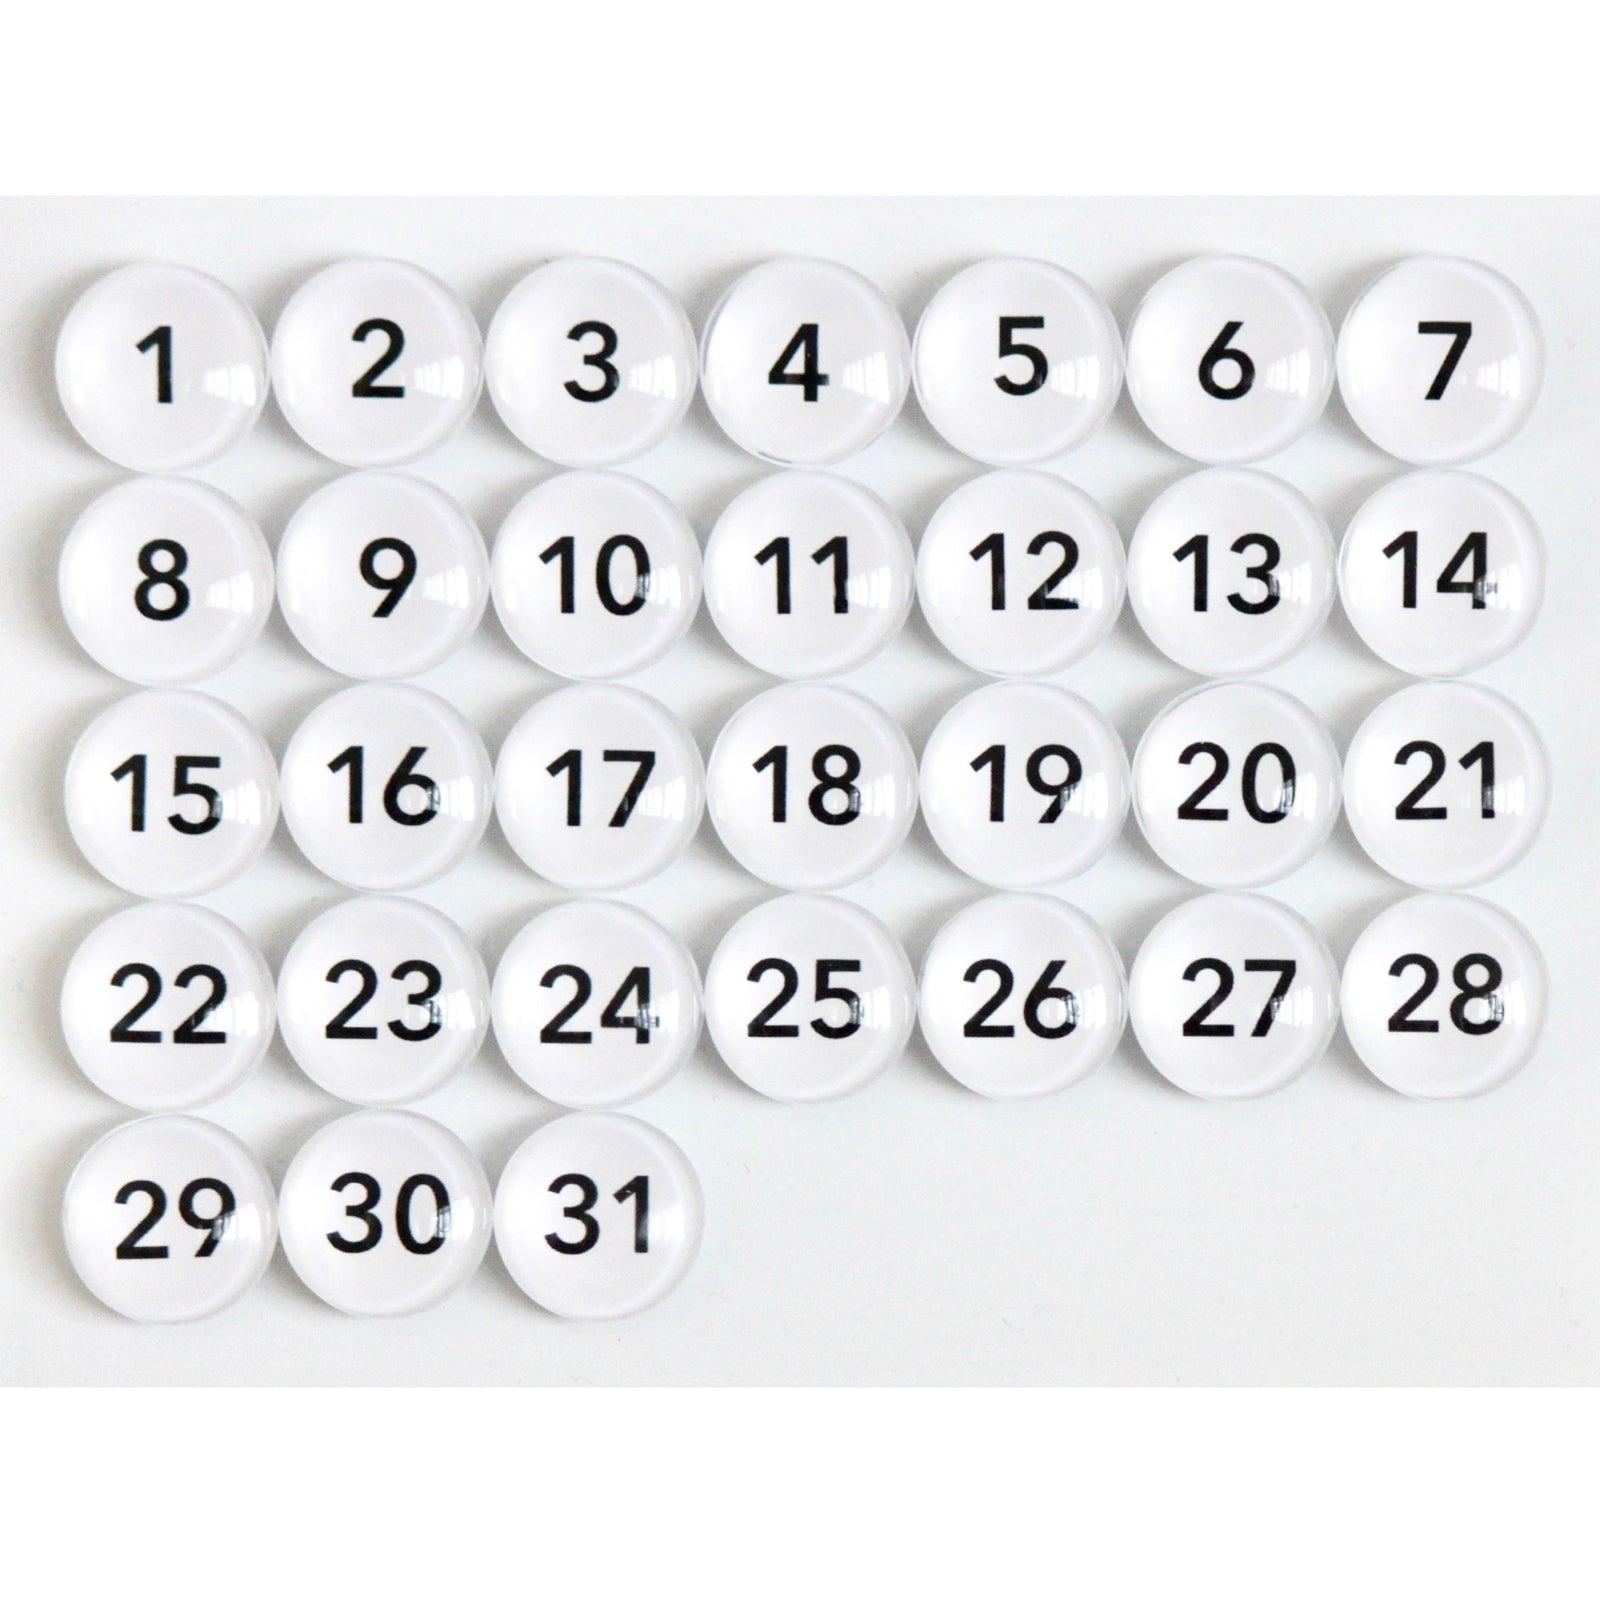 Number Magnets - White -  avenir font